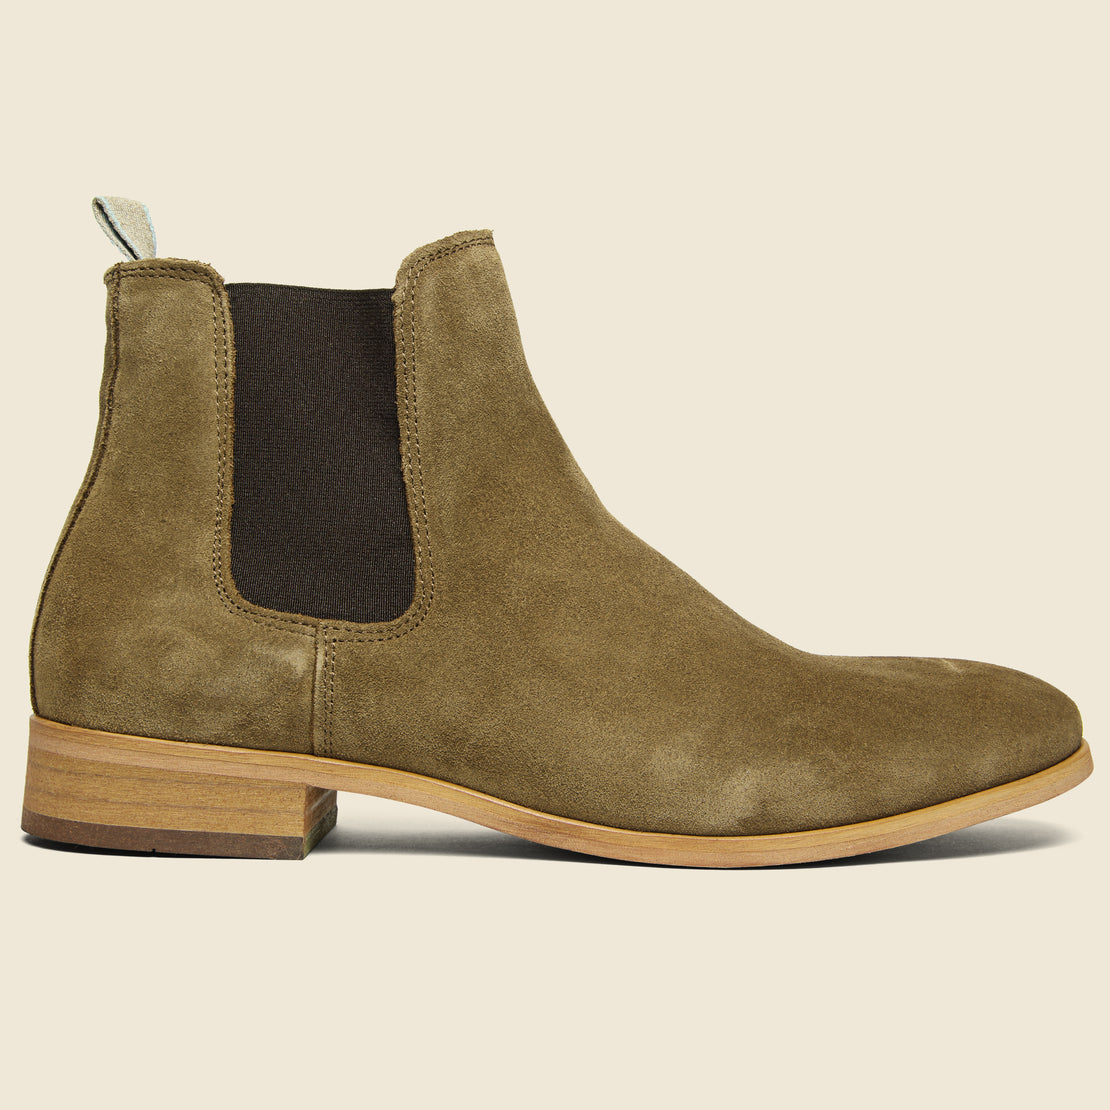 Shoe the Bear Dev Suede Chelsea Boot - Tobacco